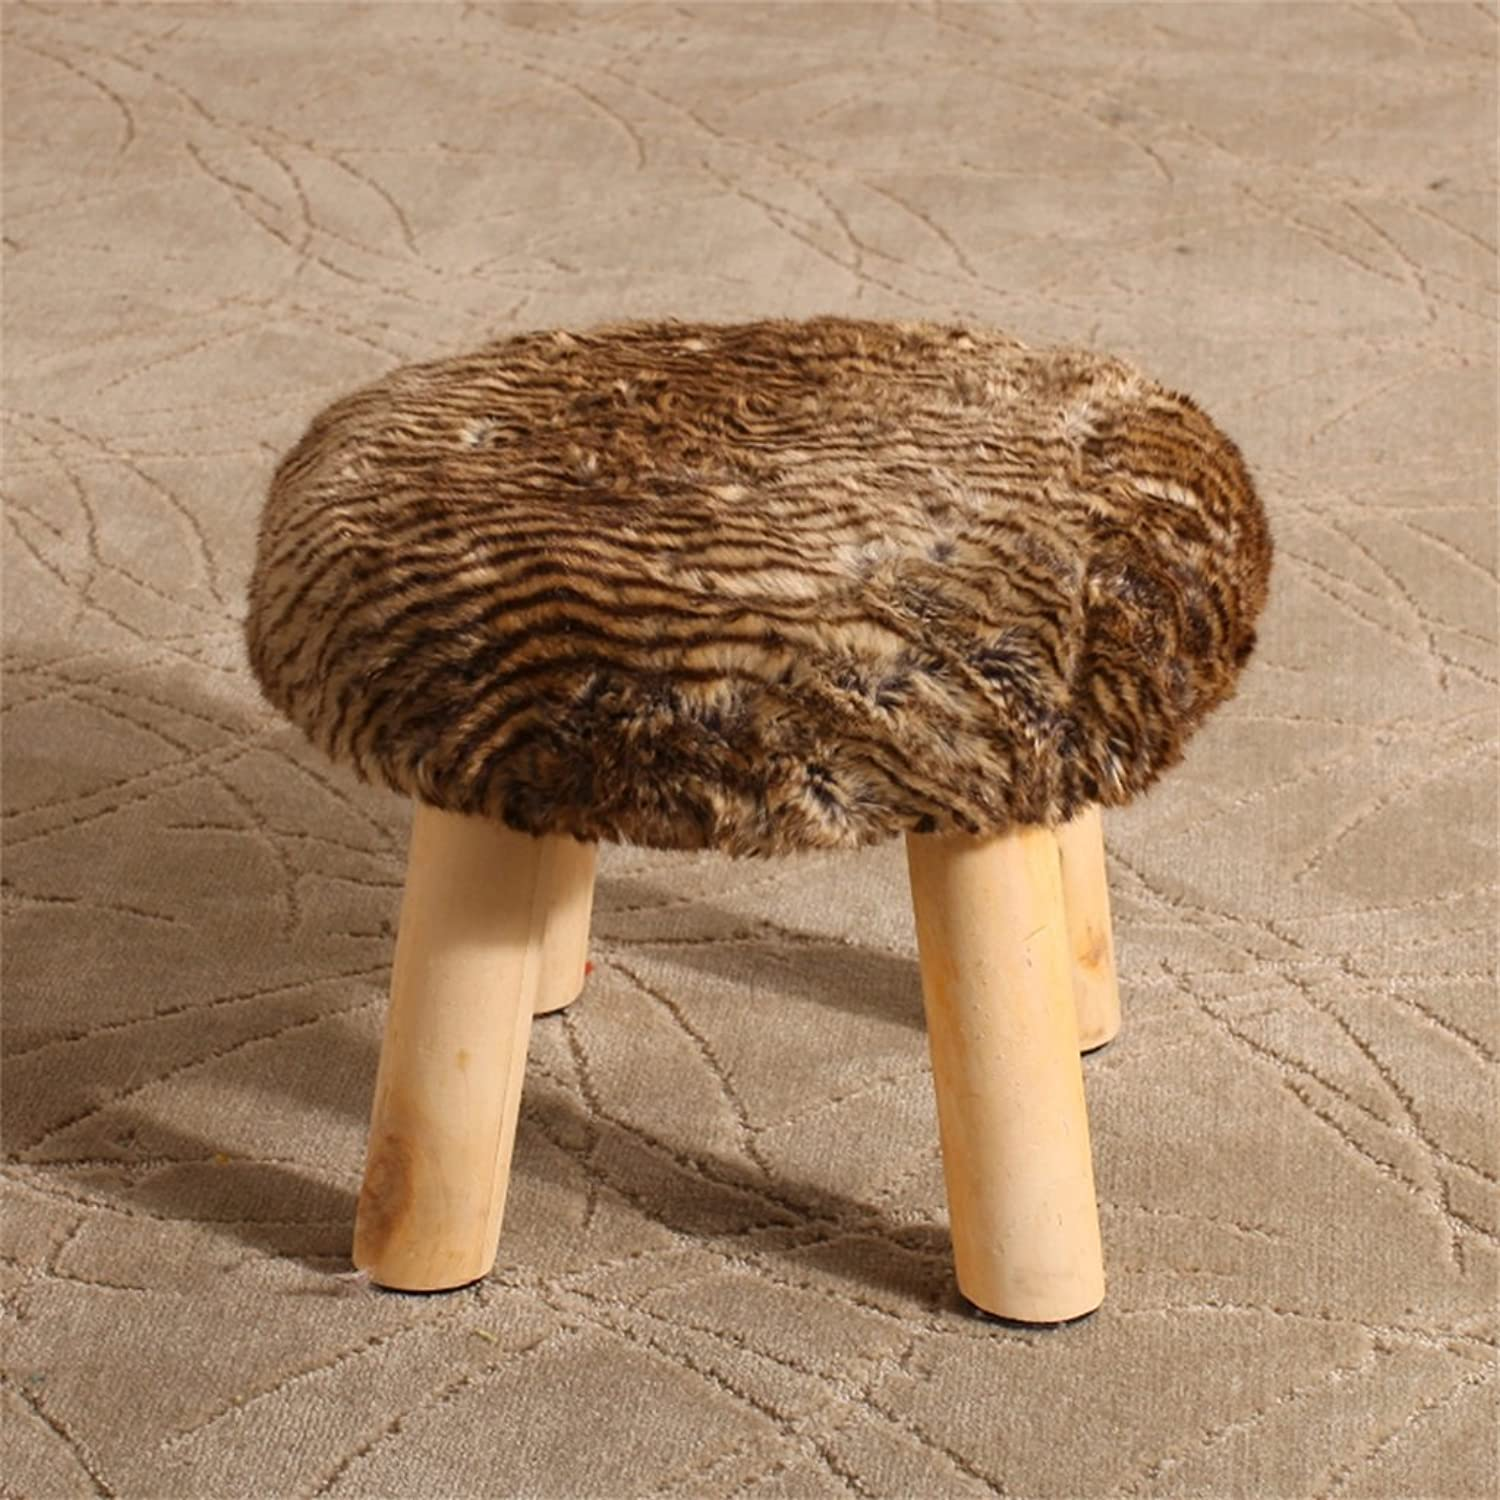 Solid Wood Change shoes Stool Round Upholstered Footstools 4 Wood Leg Pouffes Stool Fabric Cover Removable (color   B)